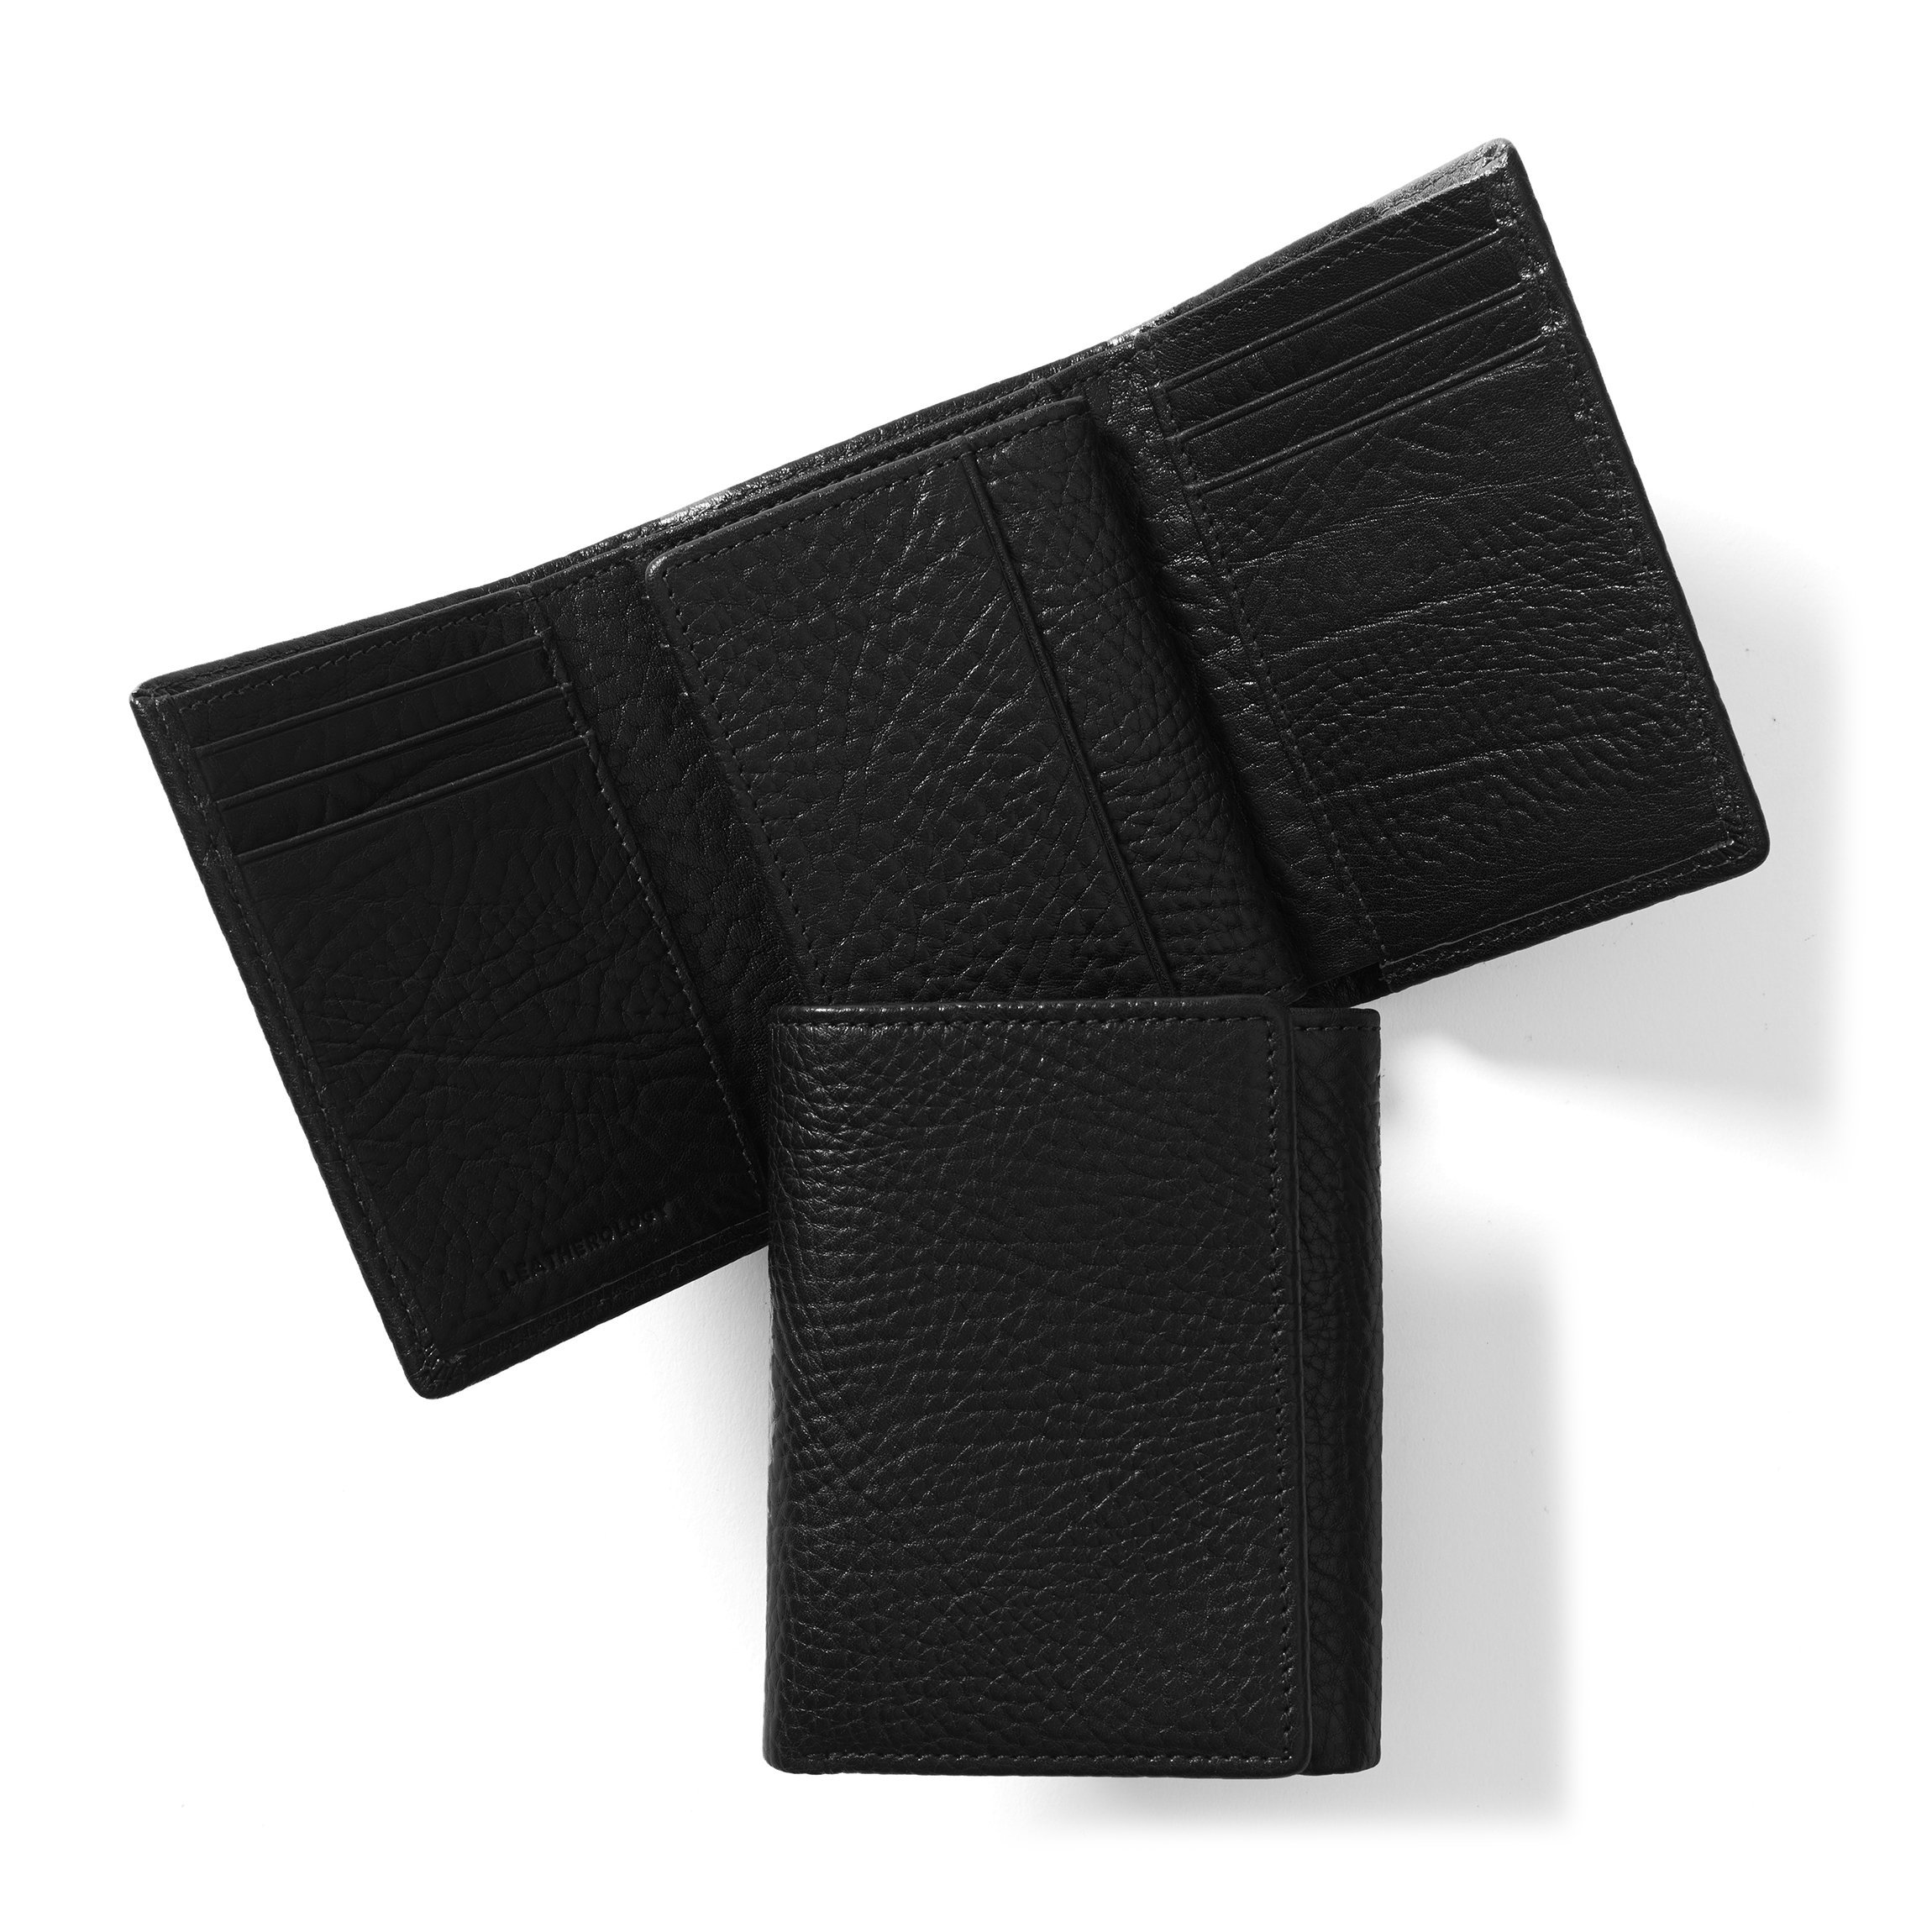 Trifold with Card Wallet - Full Grain Italian Leather Leather - Ebony (black)